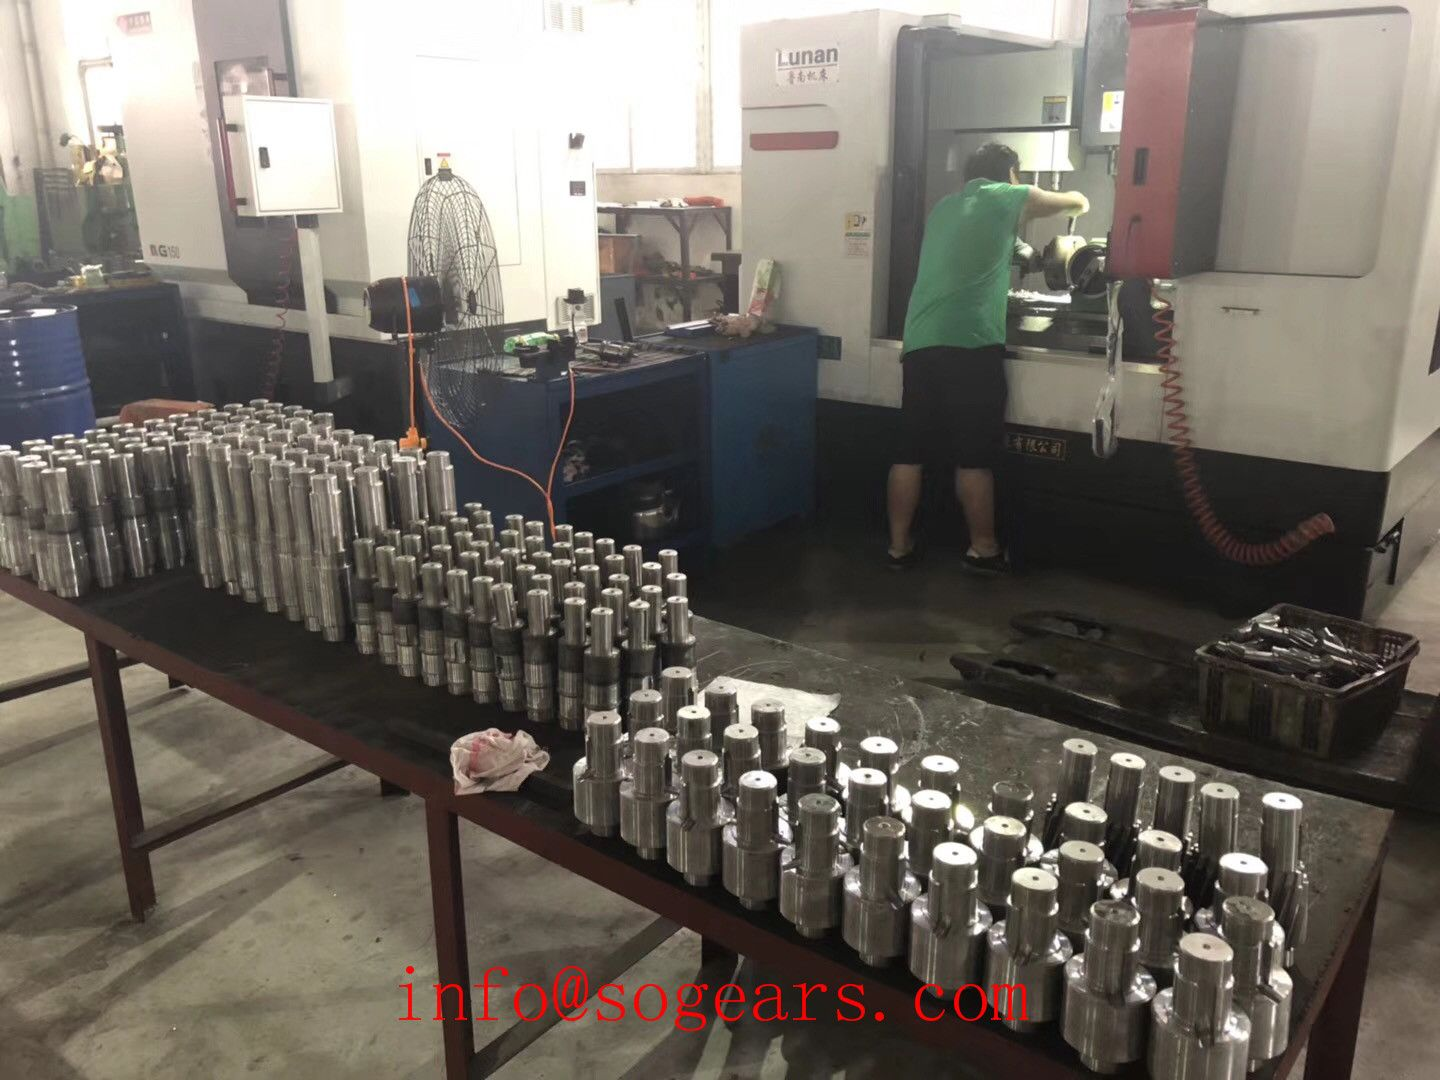 Guomao gearbox,5 hp motor with gearbox,gearboxes for sale